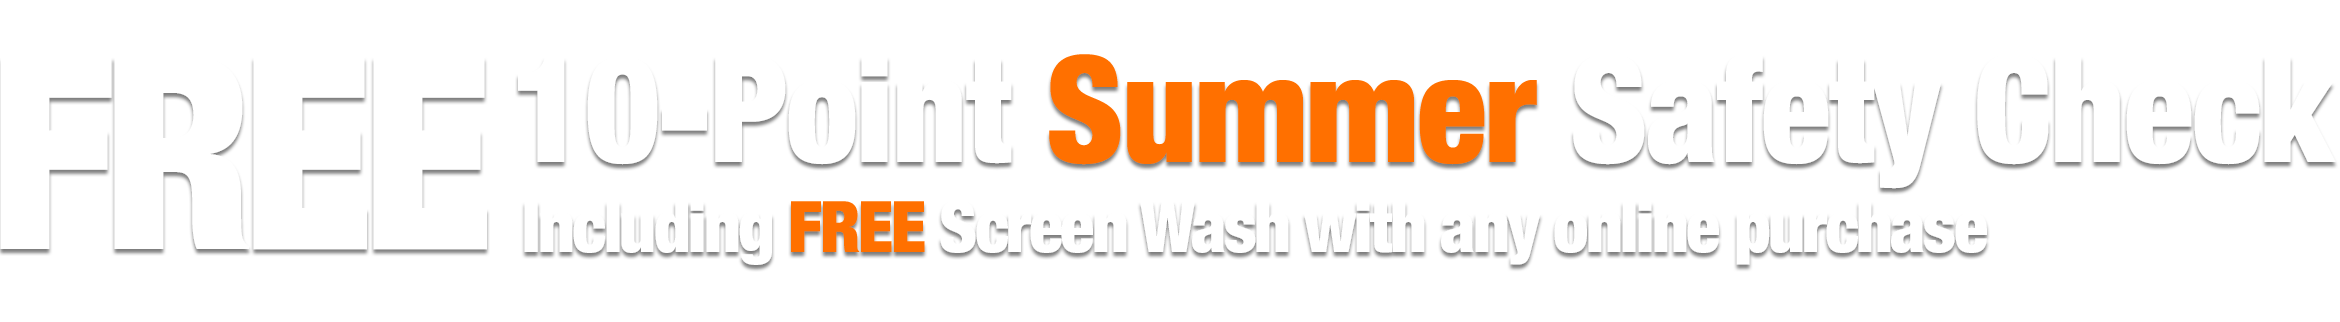 Free 10-Point Spring Safety Check including FREE Screen Wash with any online order